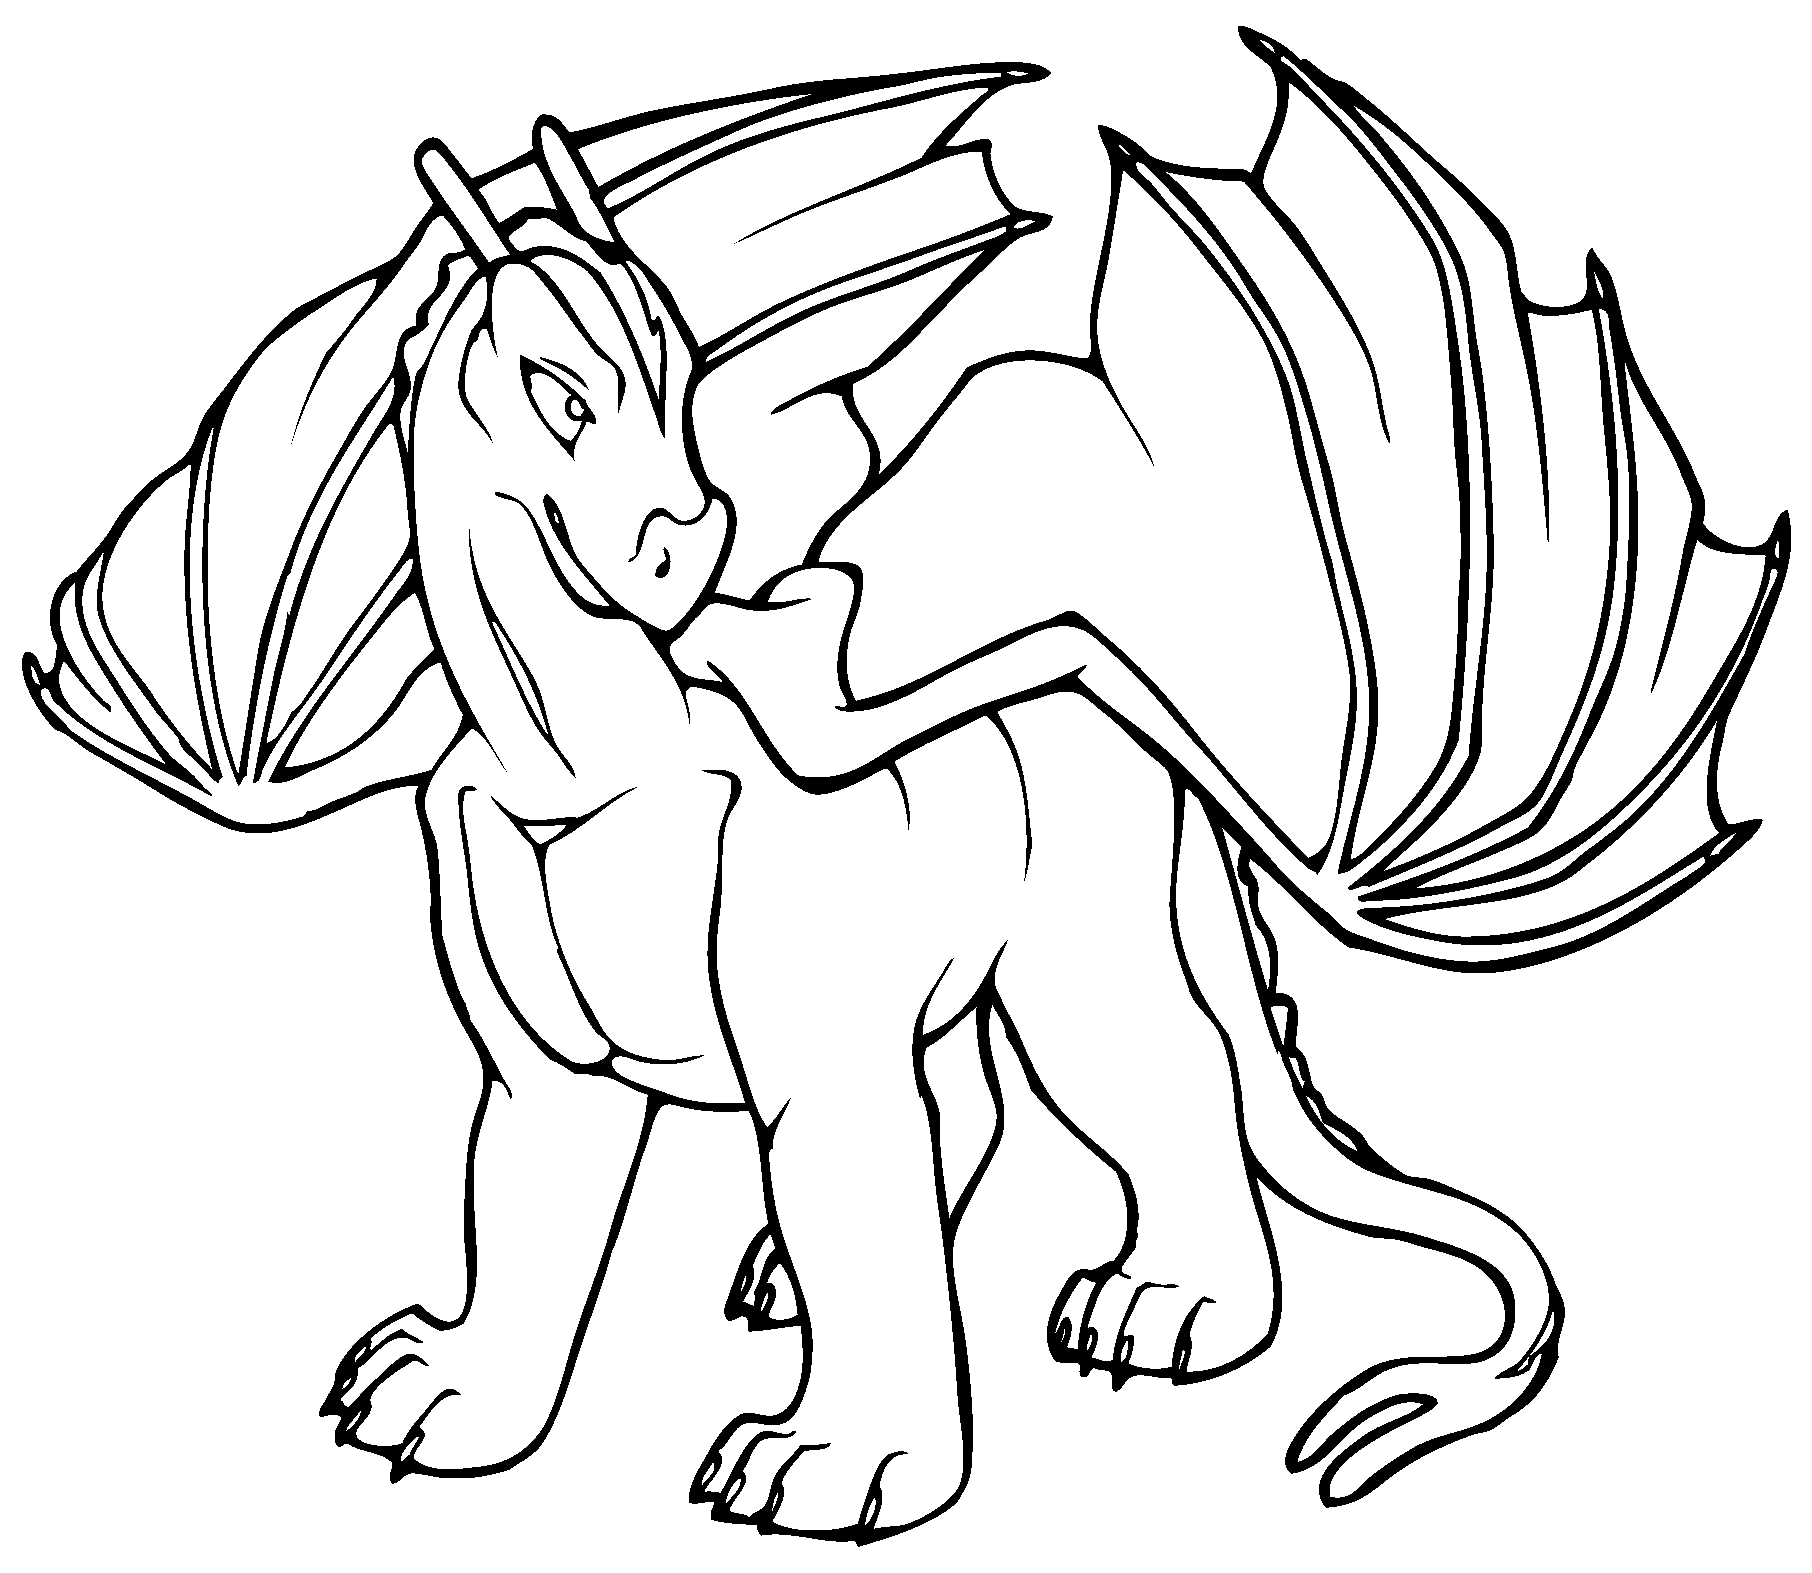 coloring pages with dragons - photo#42